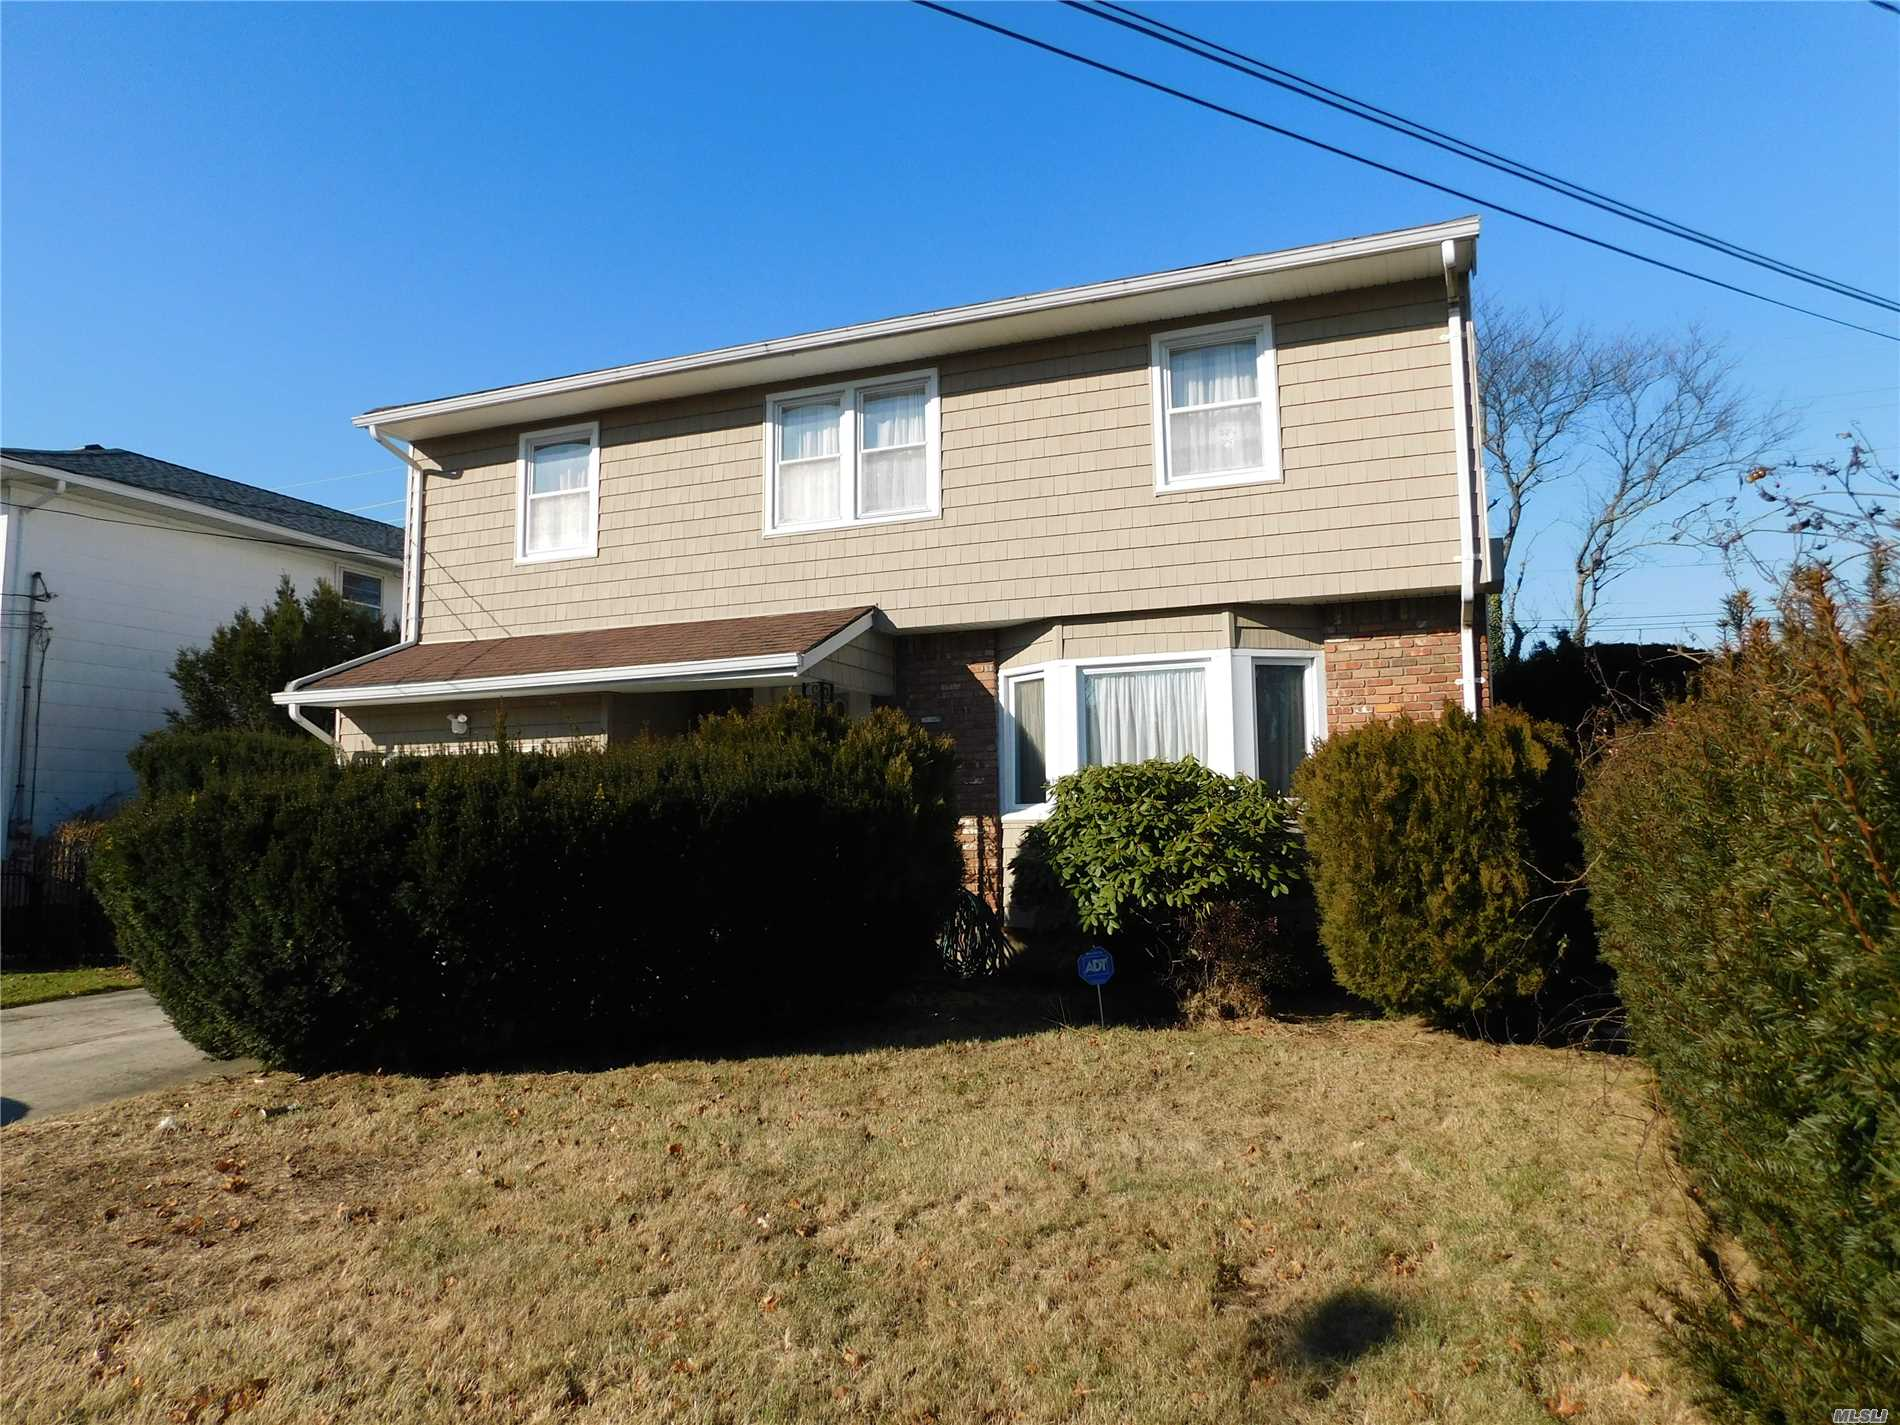 Cathedral Gardens....4 Bedroom Colonial....Formal Dining Room....Eat In Kitchen...2 Full And 2 Half Baths...Great Lay Out....Full, Finished Basement, Garage....